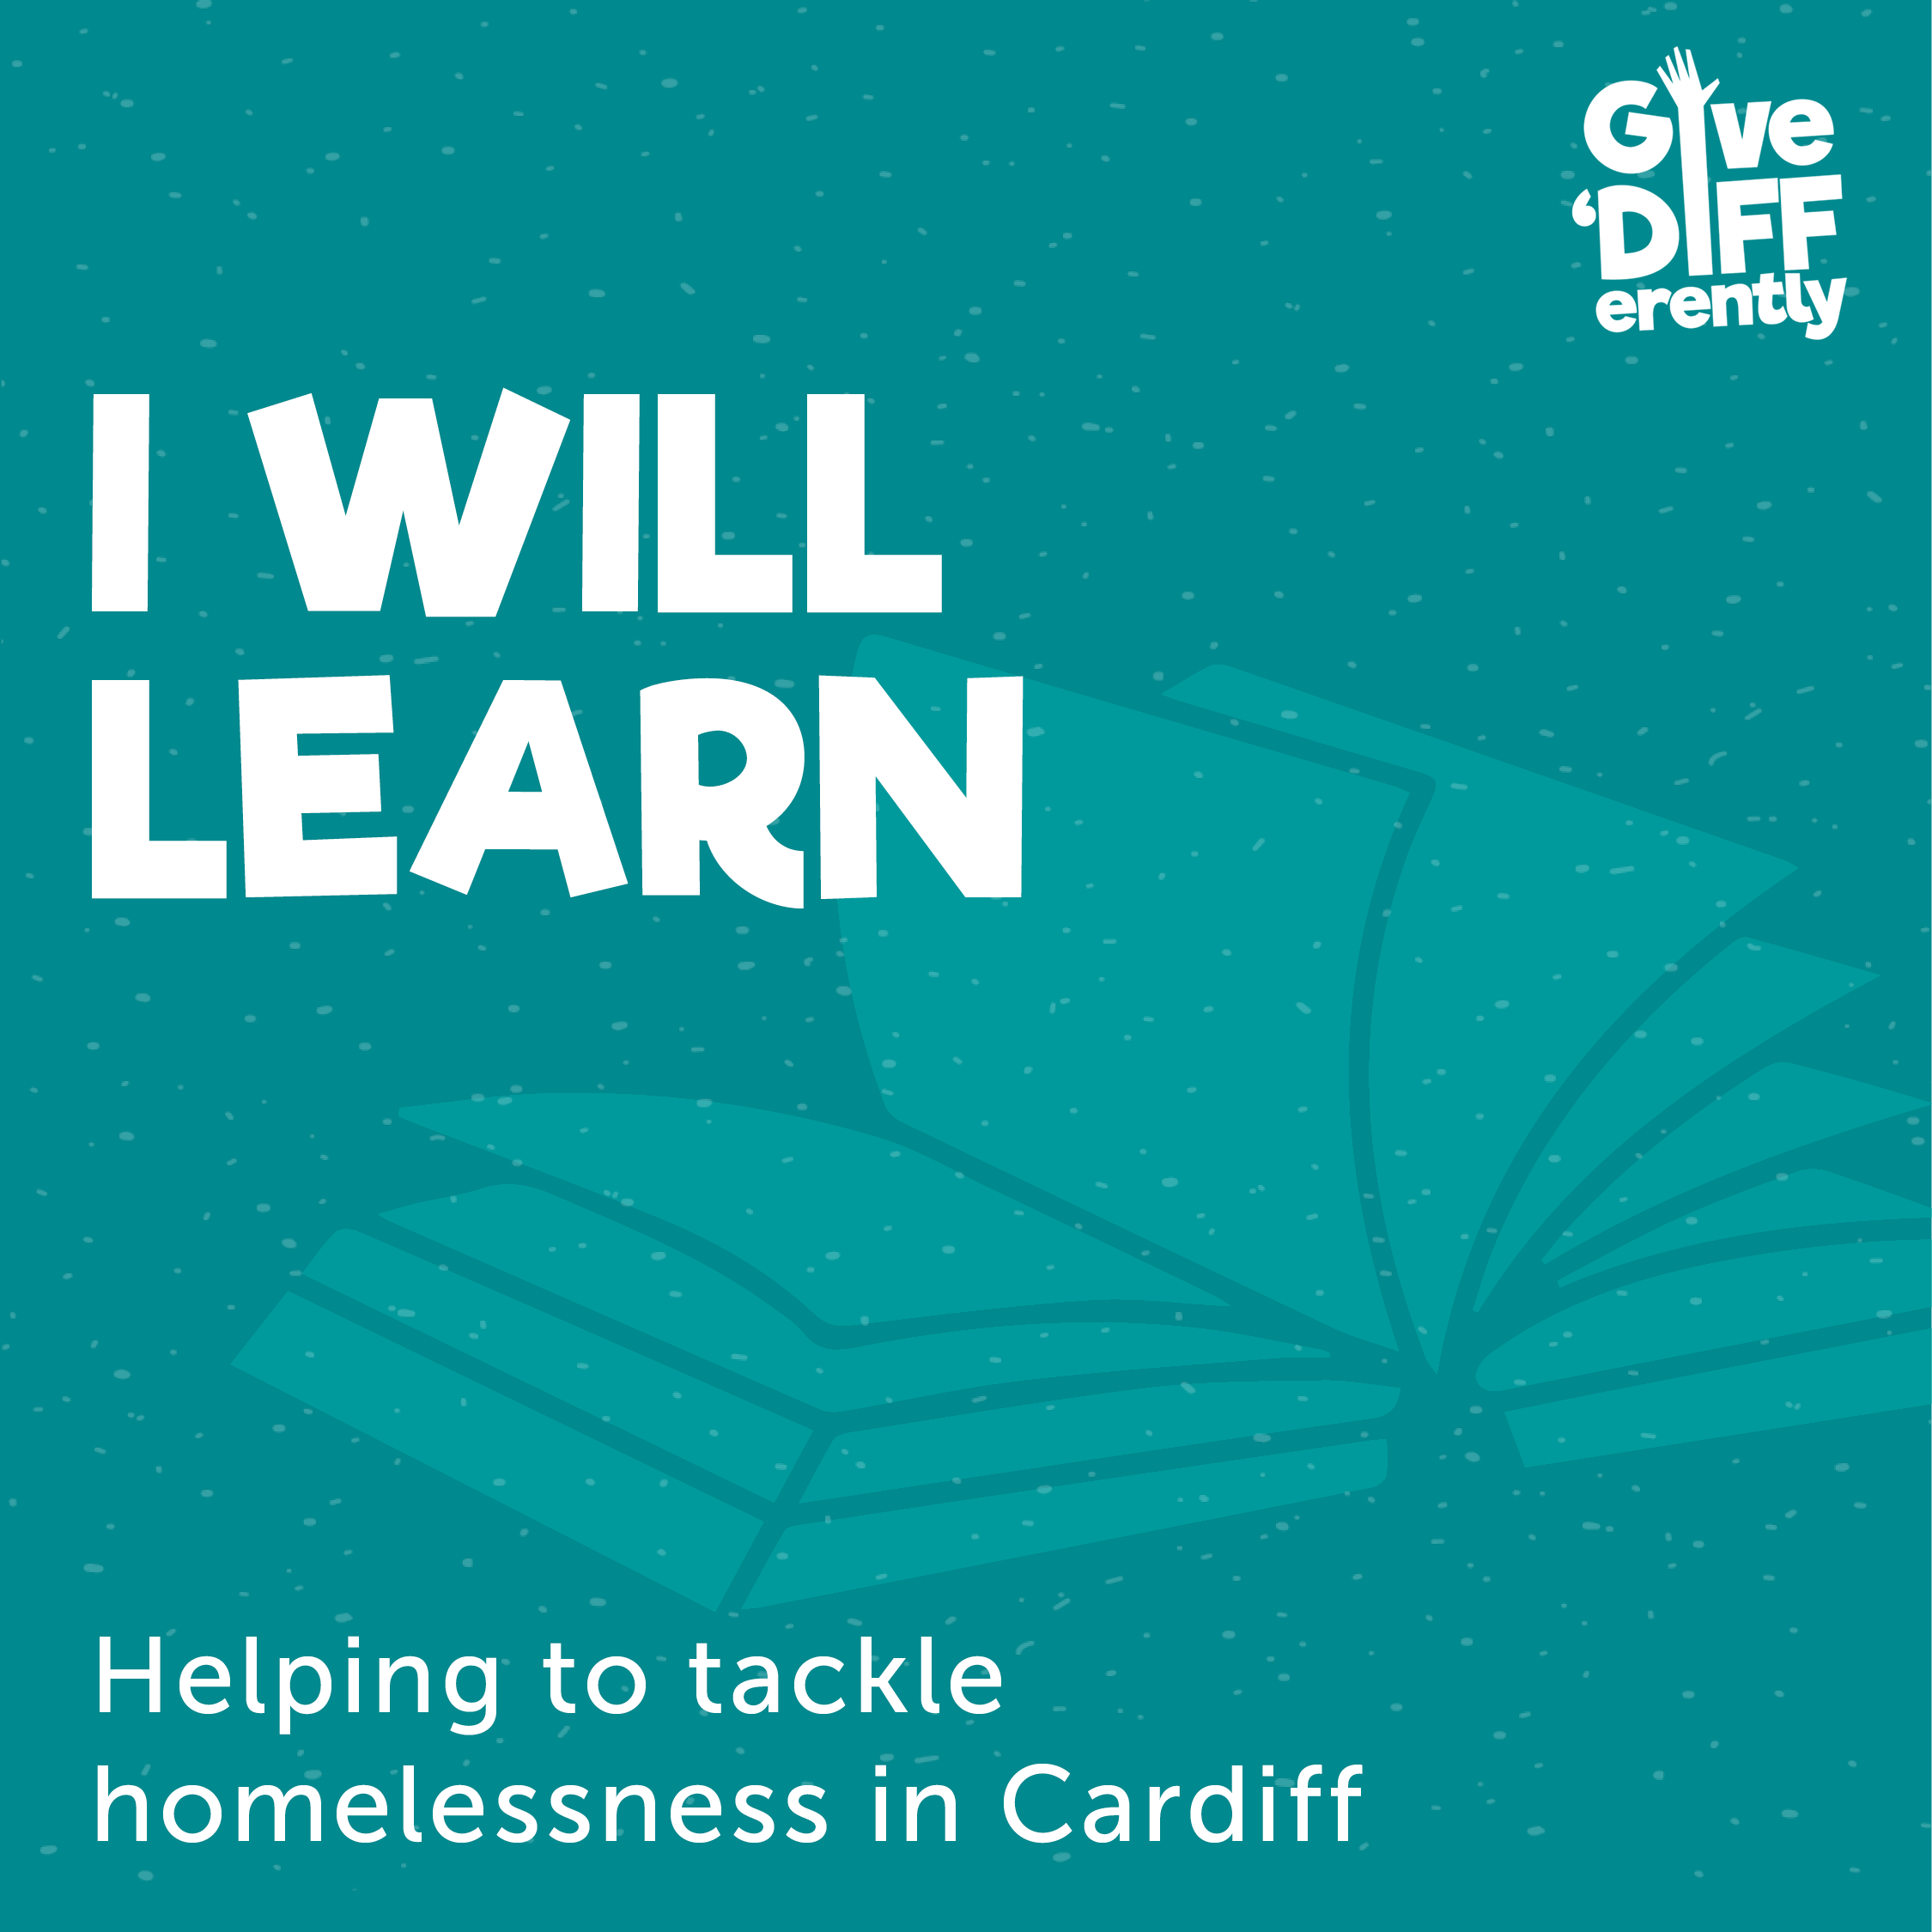 https://www.forcardiff.com/givedifferently/wp-content/uploads/2019/02/PLEDGES4.png